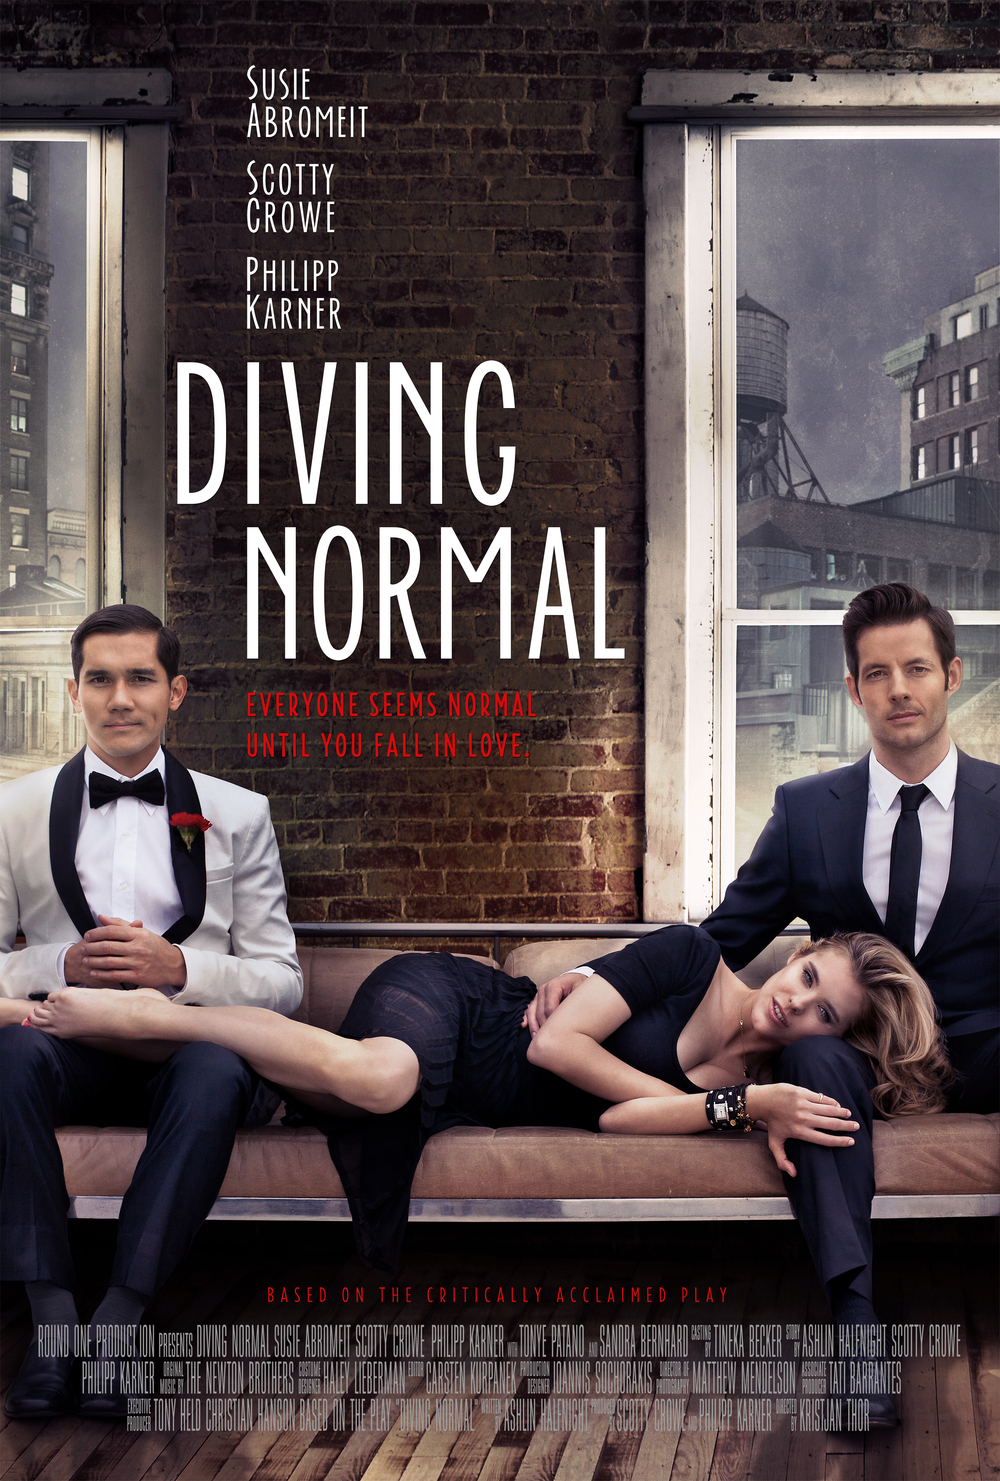 Based on the critically acclaimed play, DIVING NORMAL is about an unlikely love triangle as an ambitious Brooklynite graphic novelist and his peculiar neighbor both fall for the same beautiful, but broken girl.